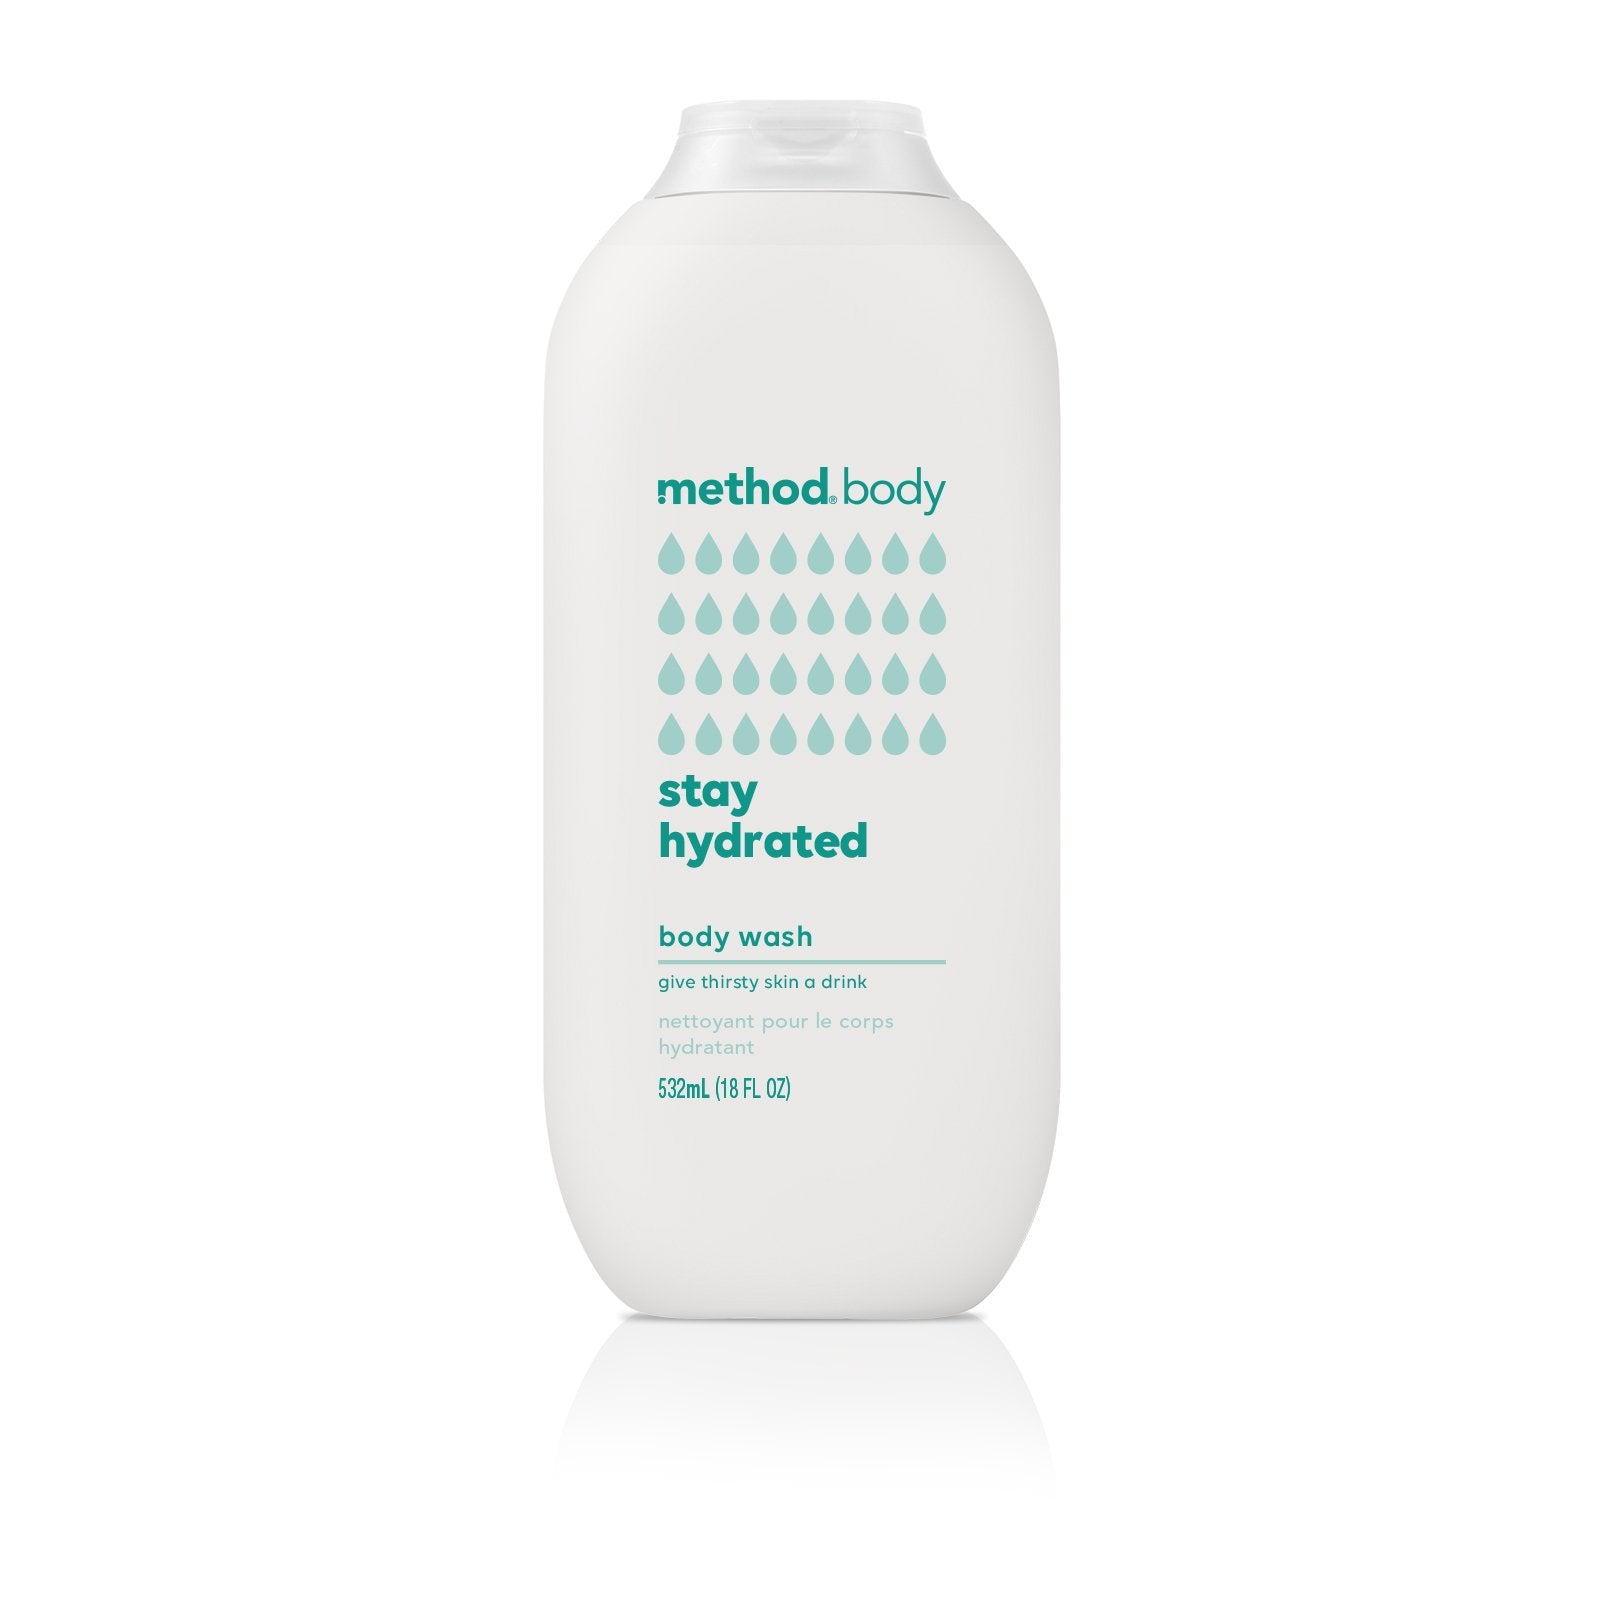 Naturally Derived Body Wash 532ml - Stay Hydrated